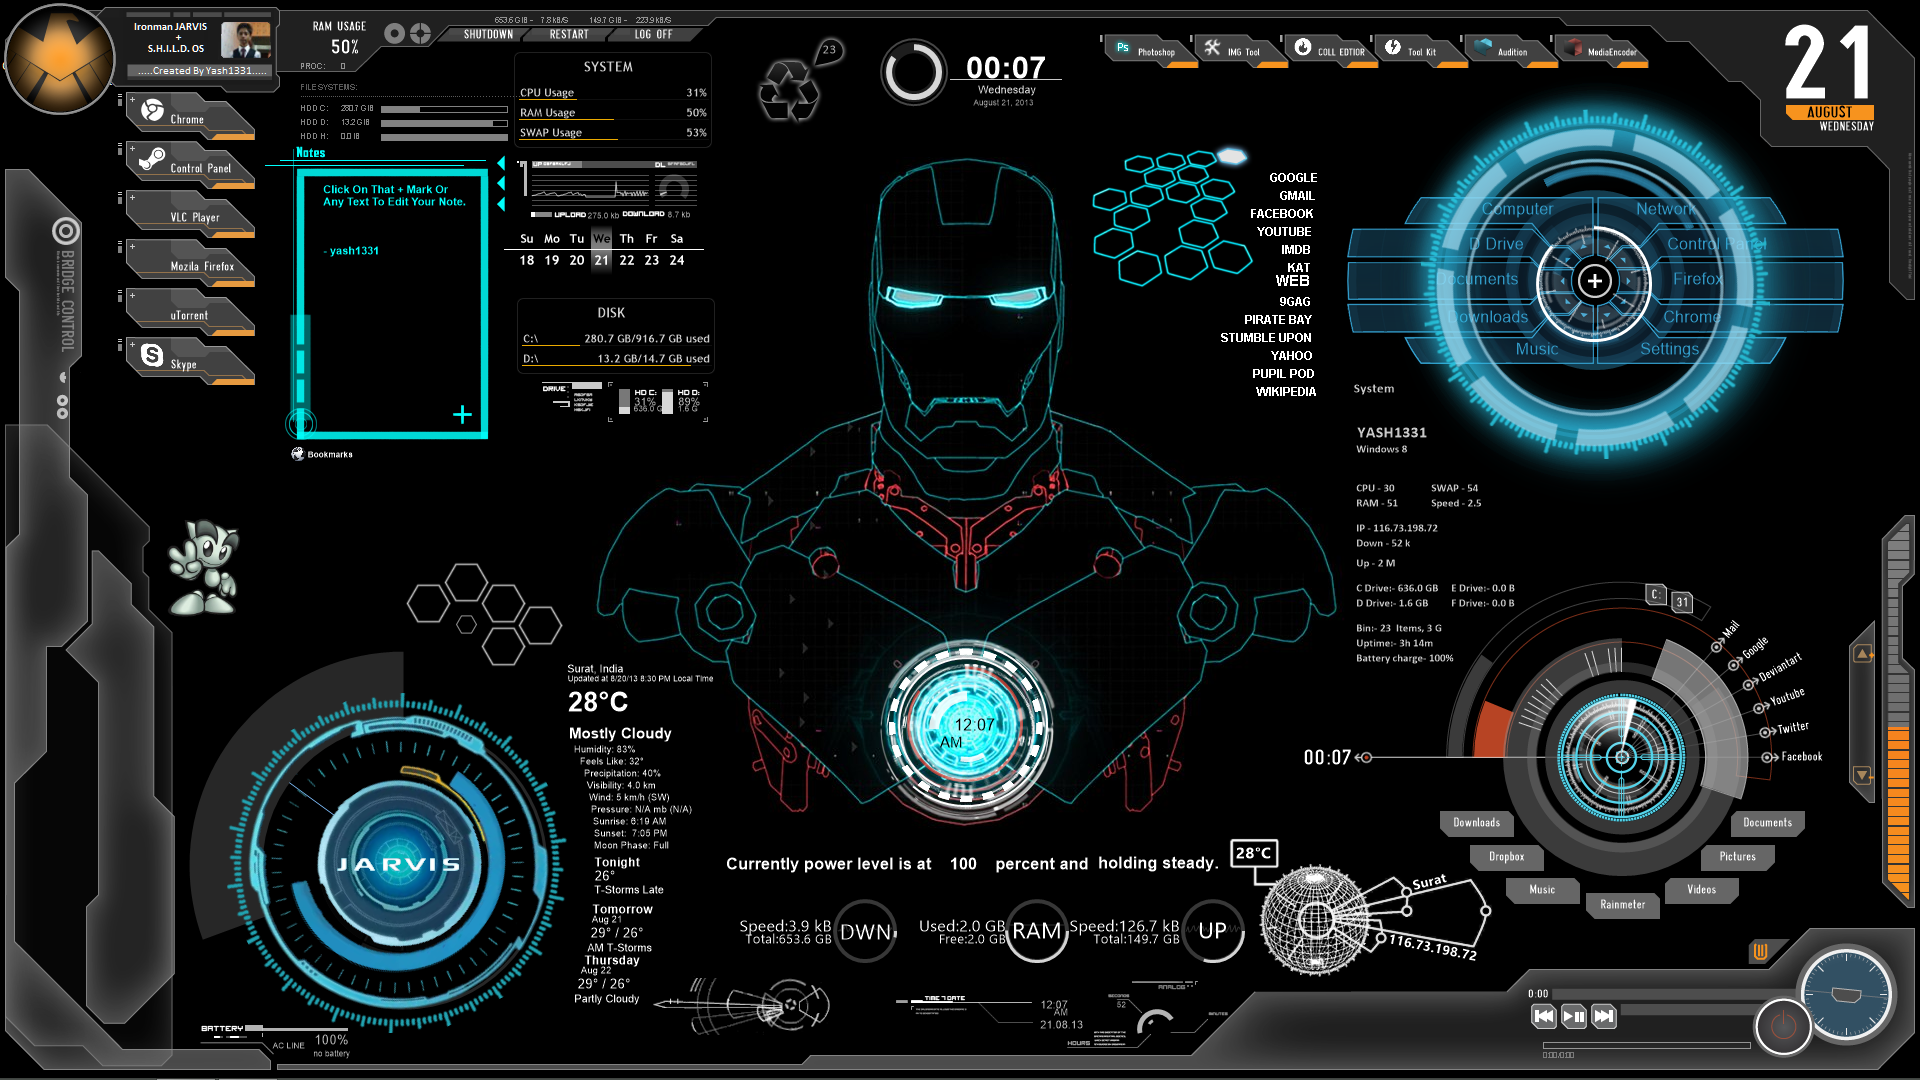 Ironman J A R V I S O S By Yash1331 On Deviantart Iron Man Wallpaper Iron Man Theme Iron Man Hd Wallpaper